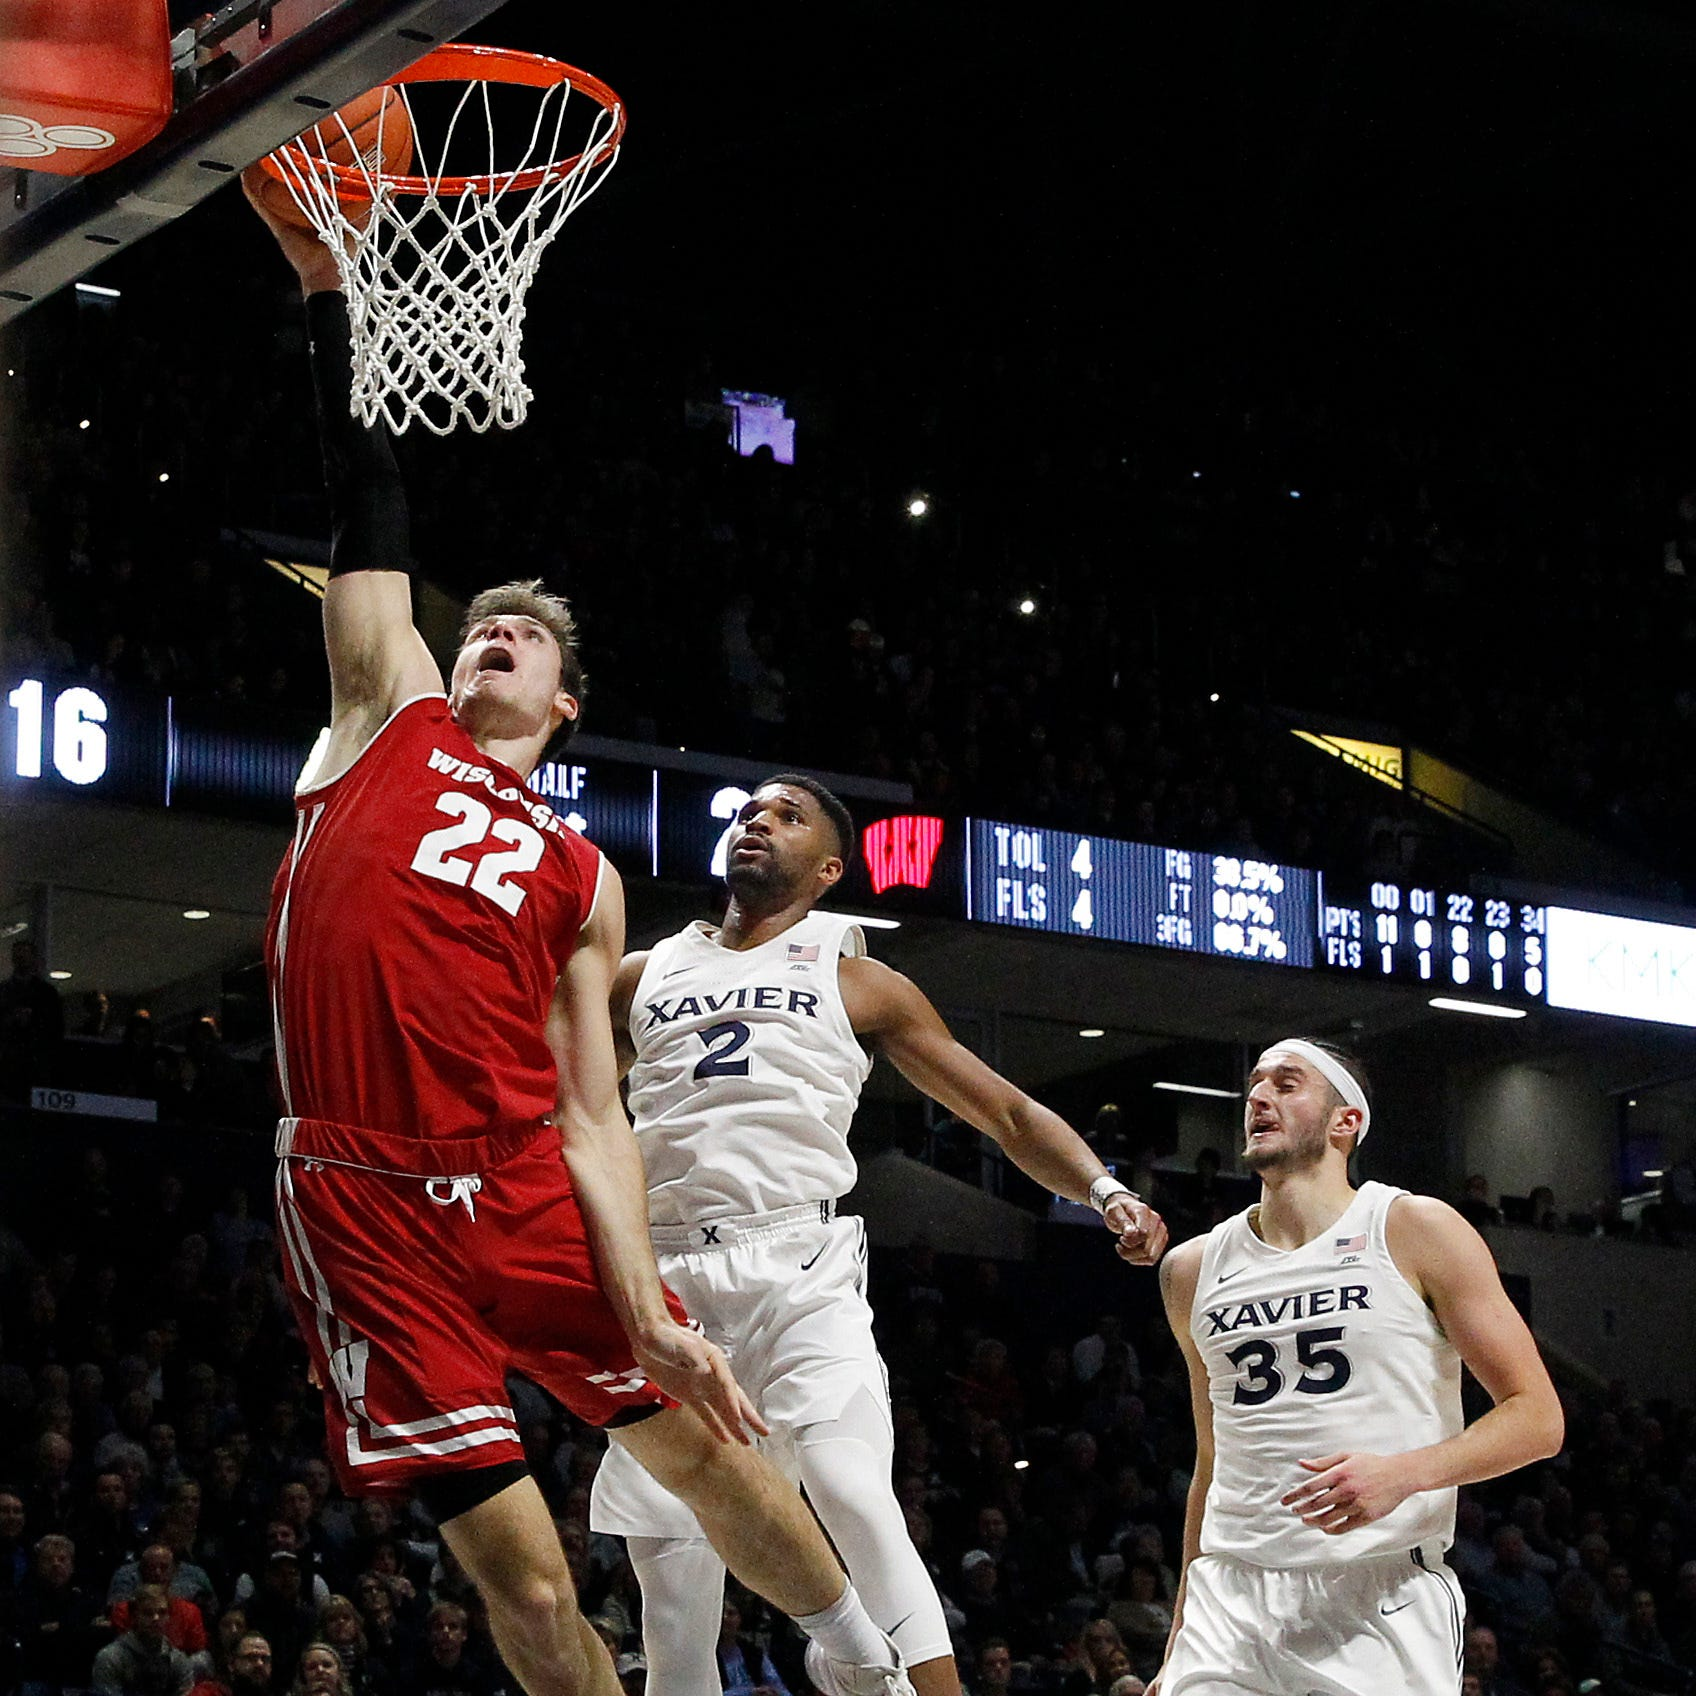 UW 77, Xavier 68: Ethan Happ, D'Mitrik Trice and Brad Davison carry the load